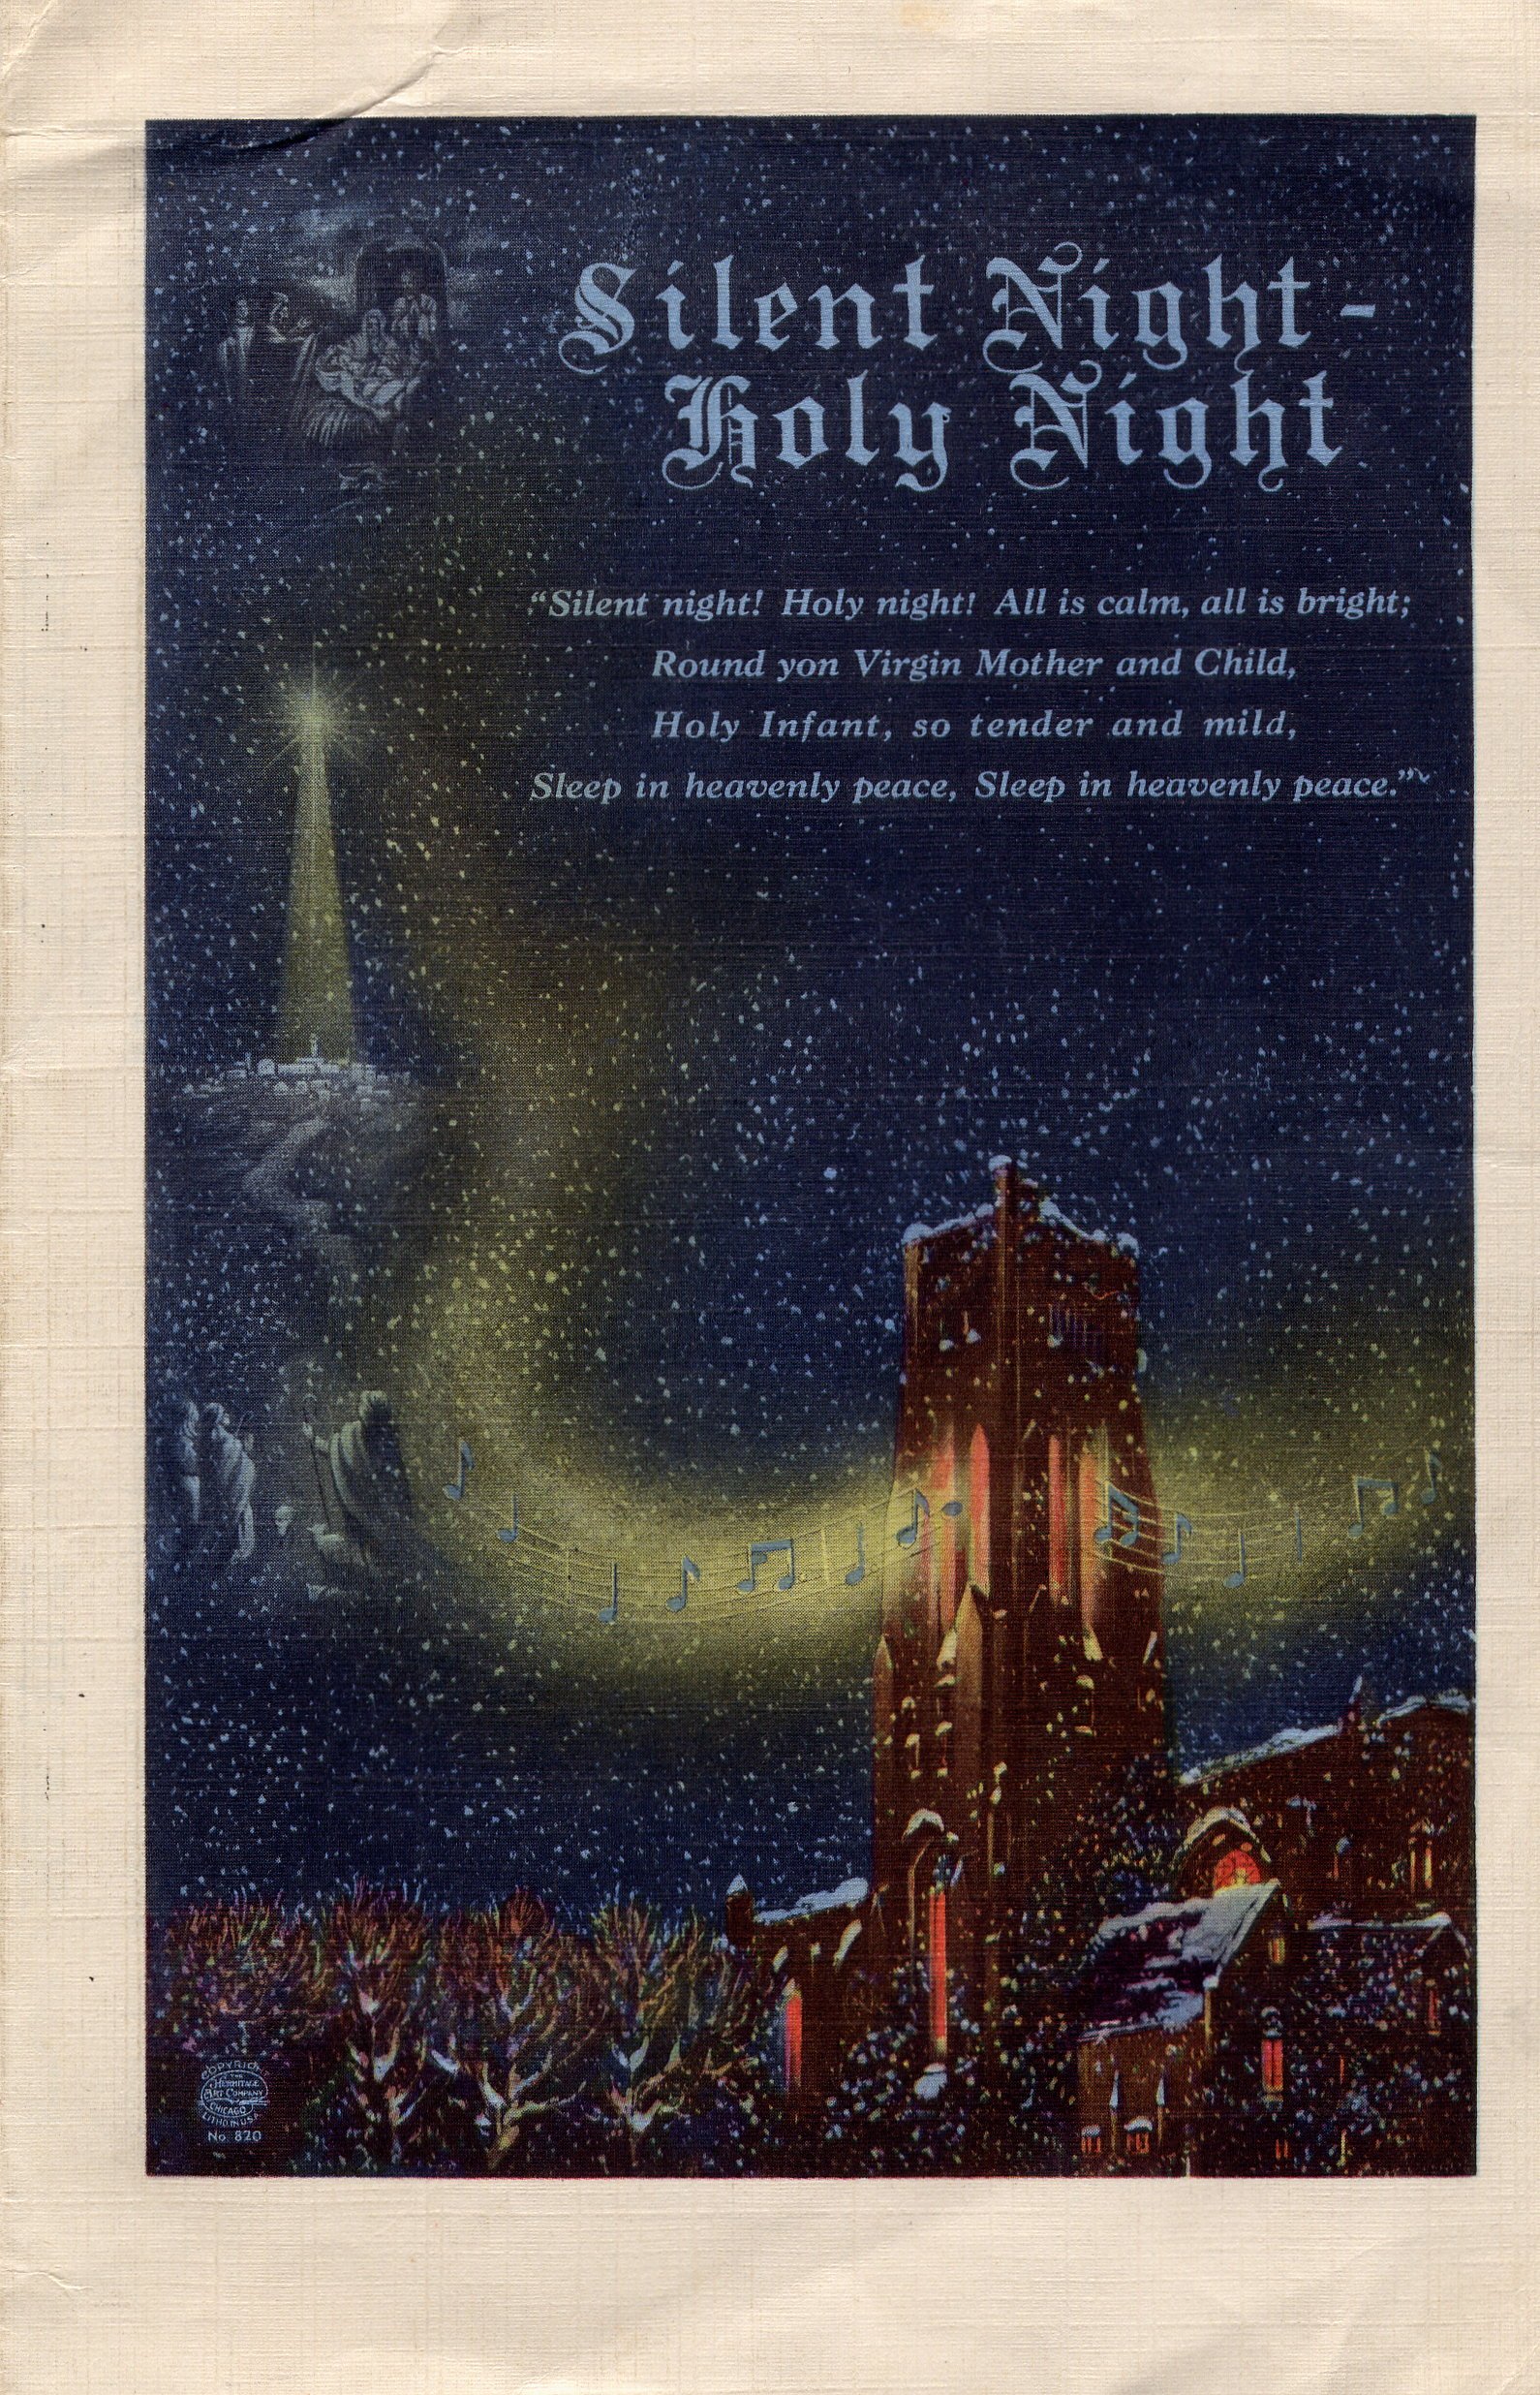 9_Christmas_in_Korea-1951-Side_A